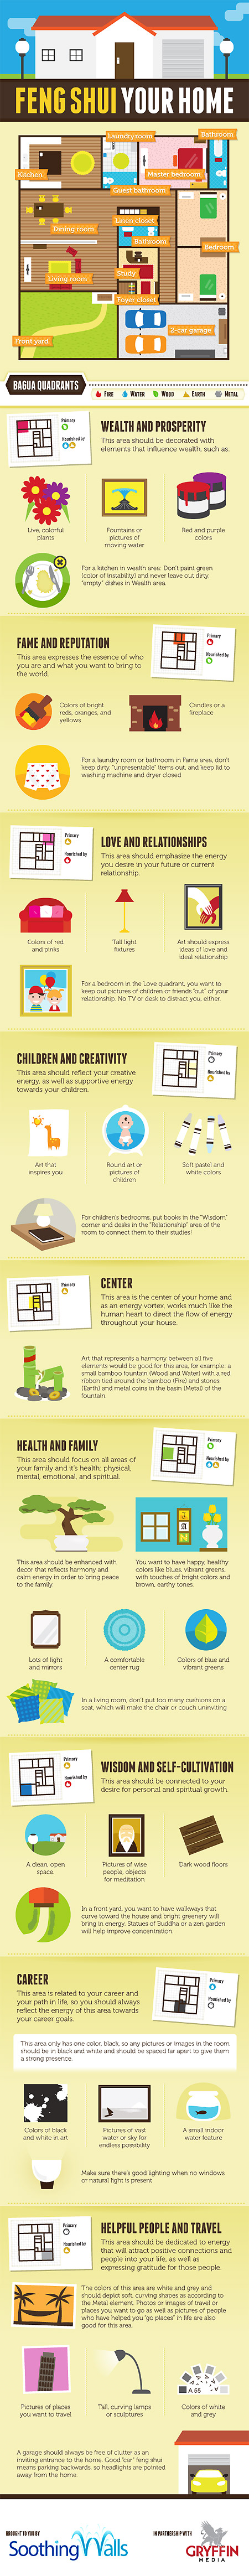 infographic feng shui. Feng Shui Tips Infographic A